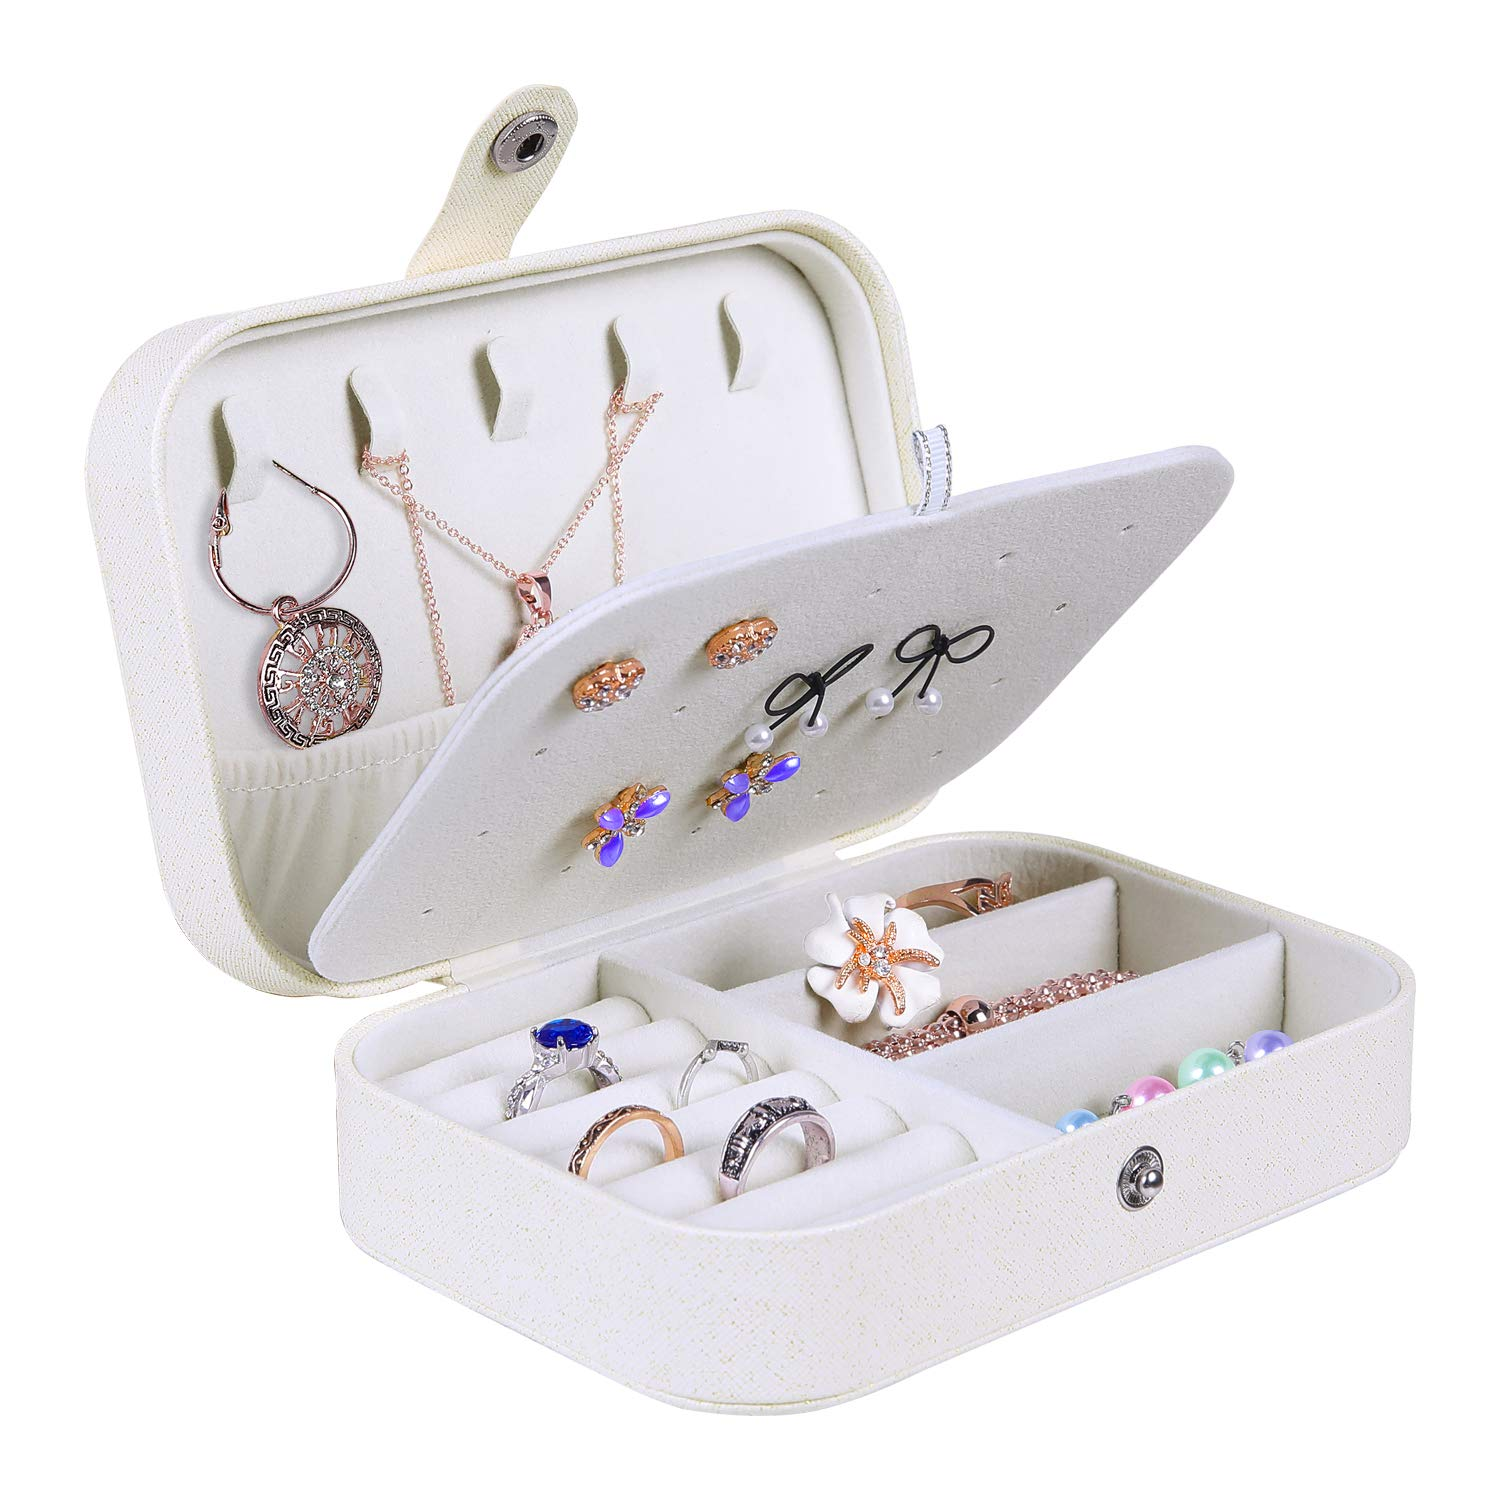 misaya Jewelry Box for Women Doubel Layer Travel Jewelry Organizer for Necklace Earring Rings Sparkle Jewelry Holder Case, Sparkle Beige White by misaya